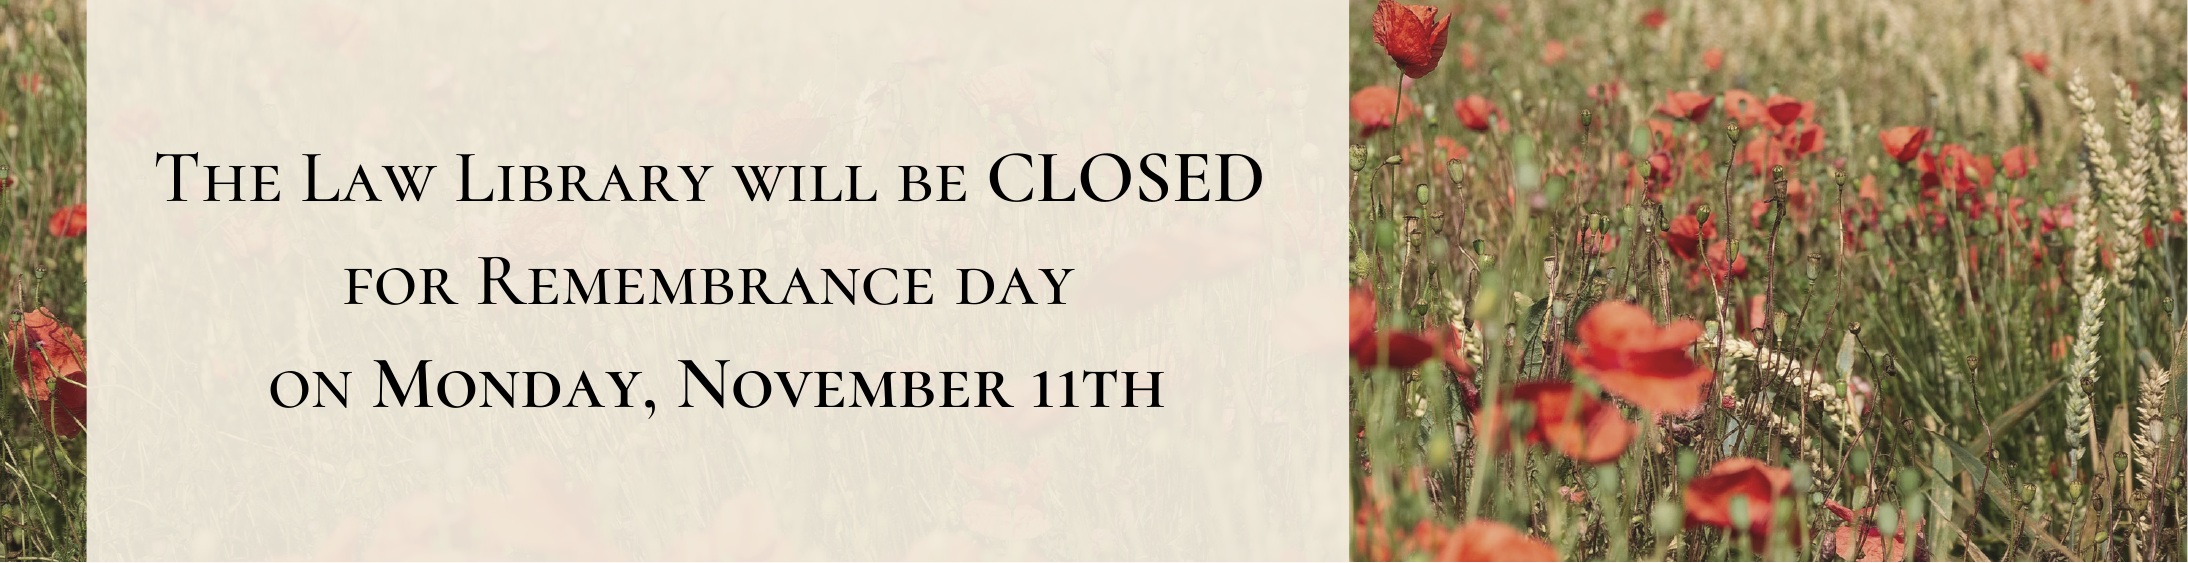 Closed Remembrance Day